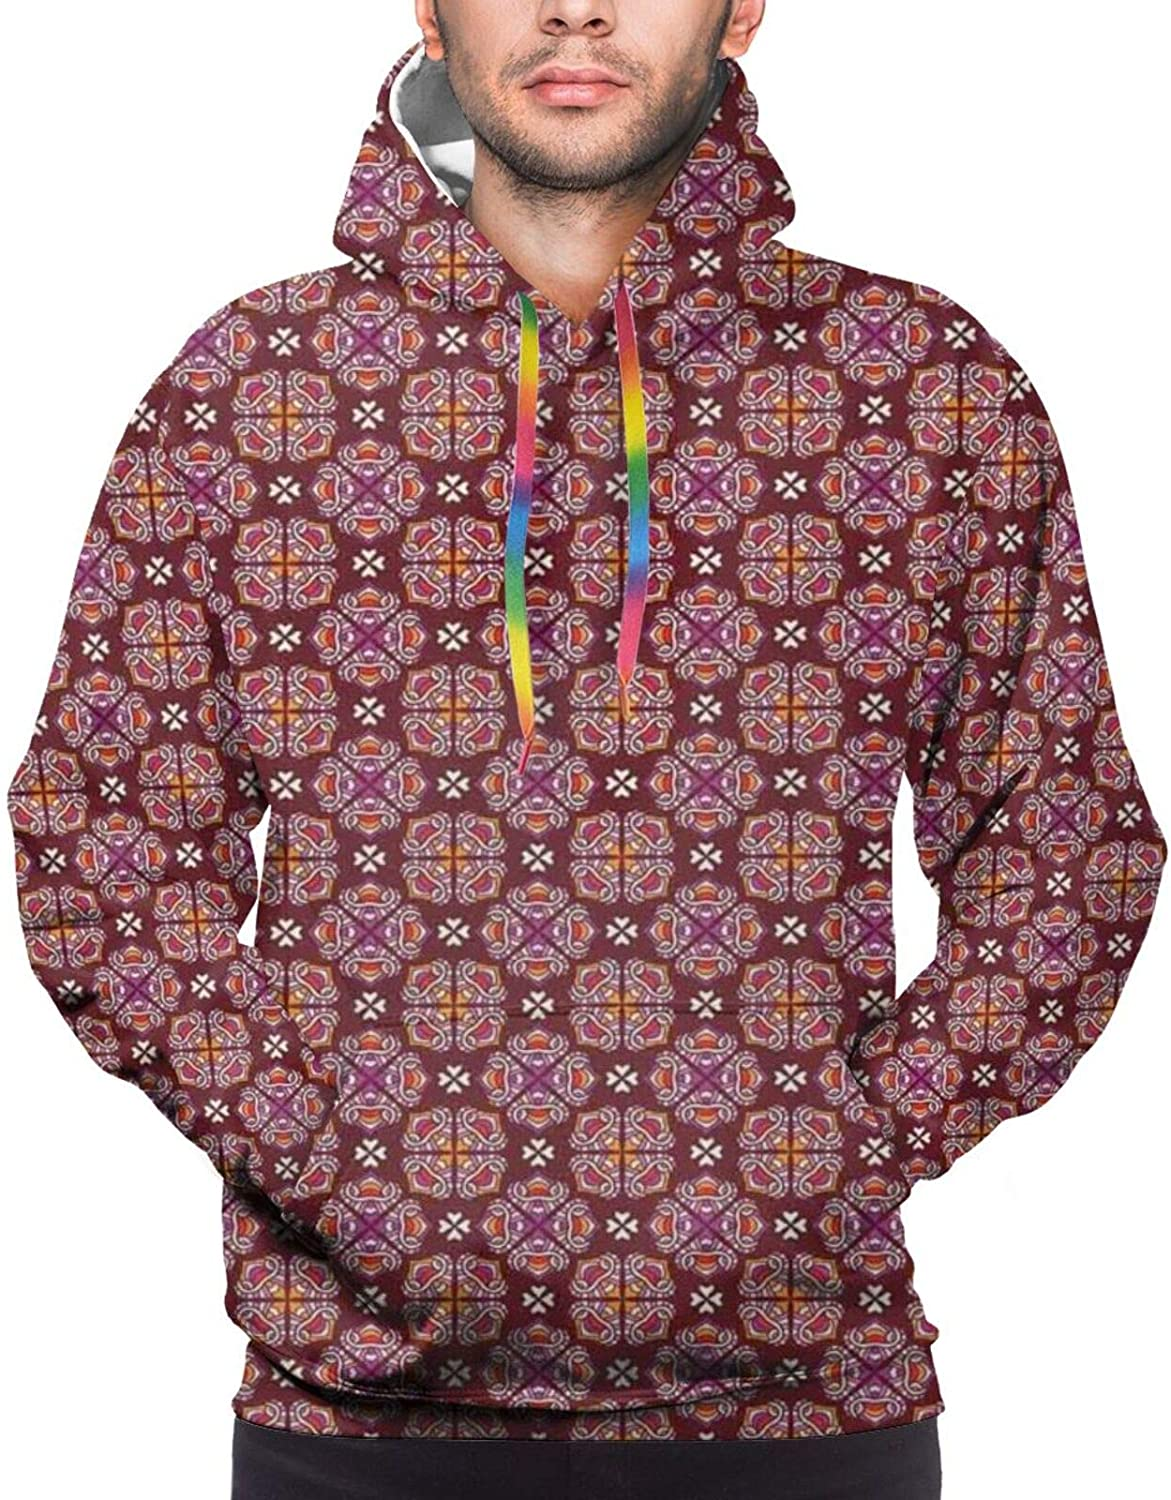 Men's Hoodies Sweatshirts,Abstract Composition Graphic Floral Motifs with Squares Pattern